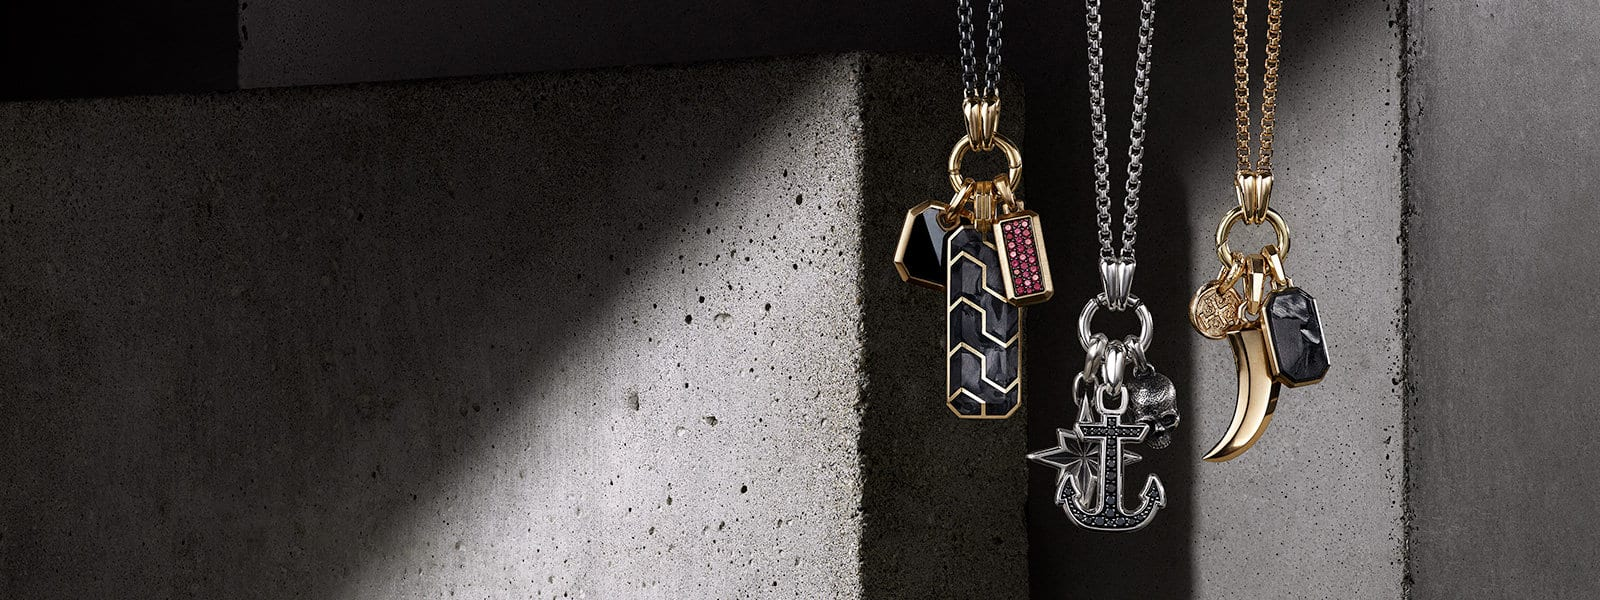 David Yurman Men's Roman, Forged Carbon and Streamline pendants in 18K gold with or without black onyx, forged carbon or rubies; Maritime or Petrvs pendants in sterling silver with or without black diamonds; or Shipwreck, Roman and Forged Carbon pendants in 18K gold with or without forged carbon, arranged in three groups, each hanging on an Amulet Necklace in mixed metals, sterling silver, or 18K gold, in front of textured stones illuminated by rays of light.